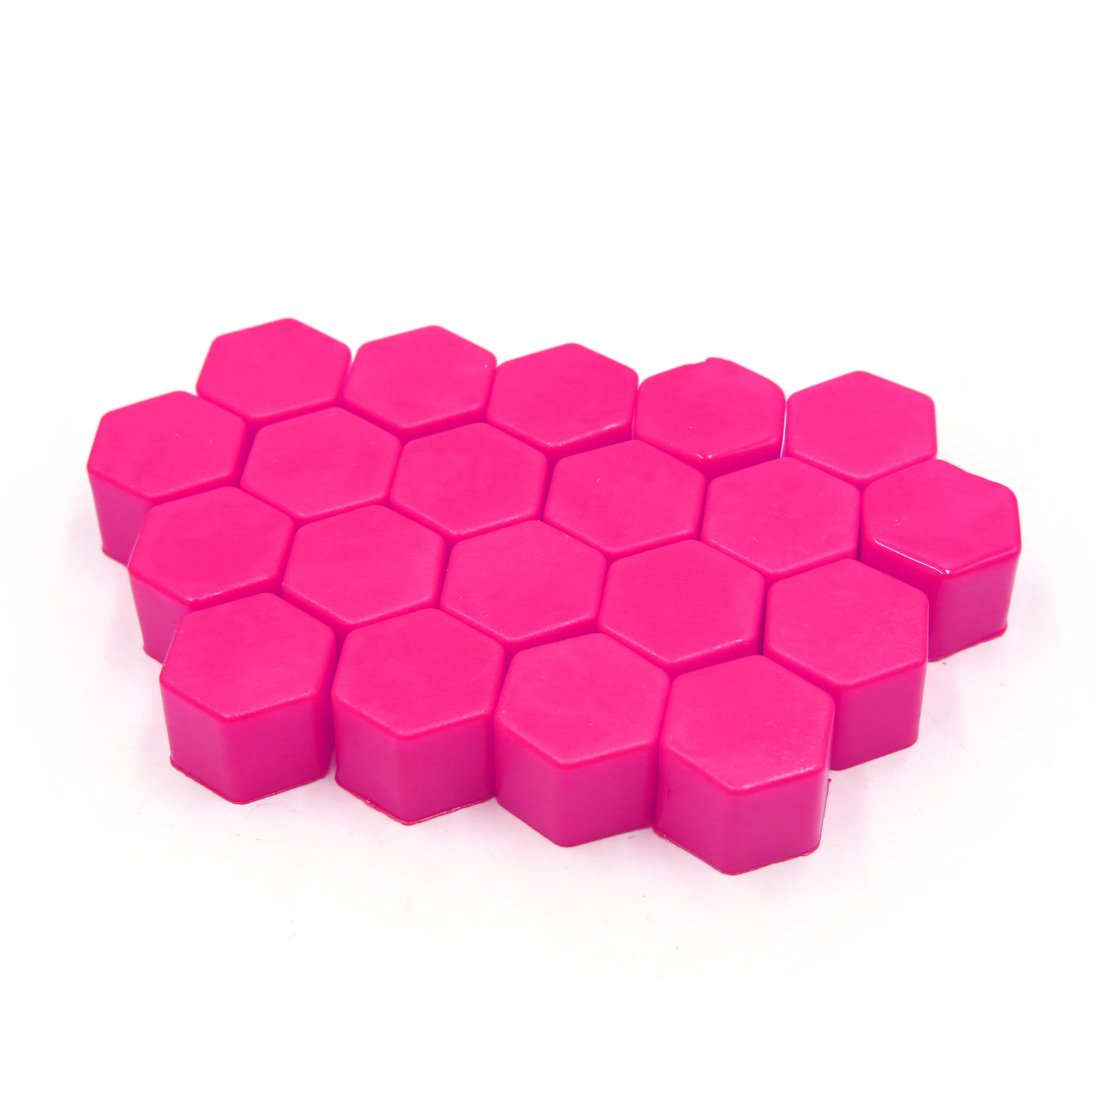 uxcell 20Pcs 17mm Pink Luminous Car Wheel Lug Nut Bolt Hub Screw Cover Protective Cap a17051100ux0604